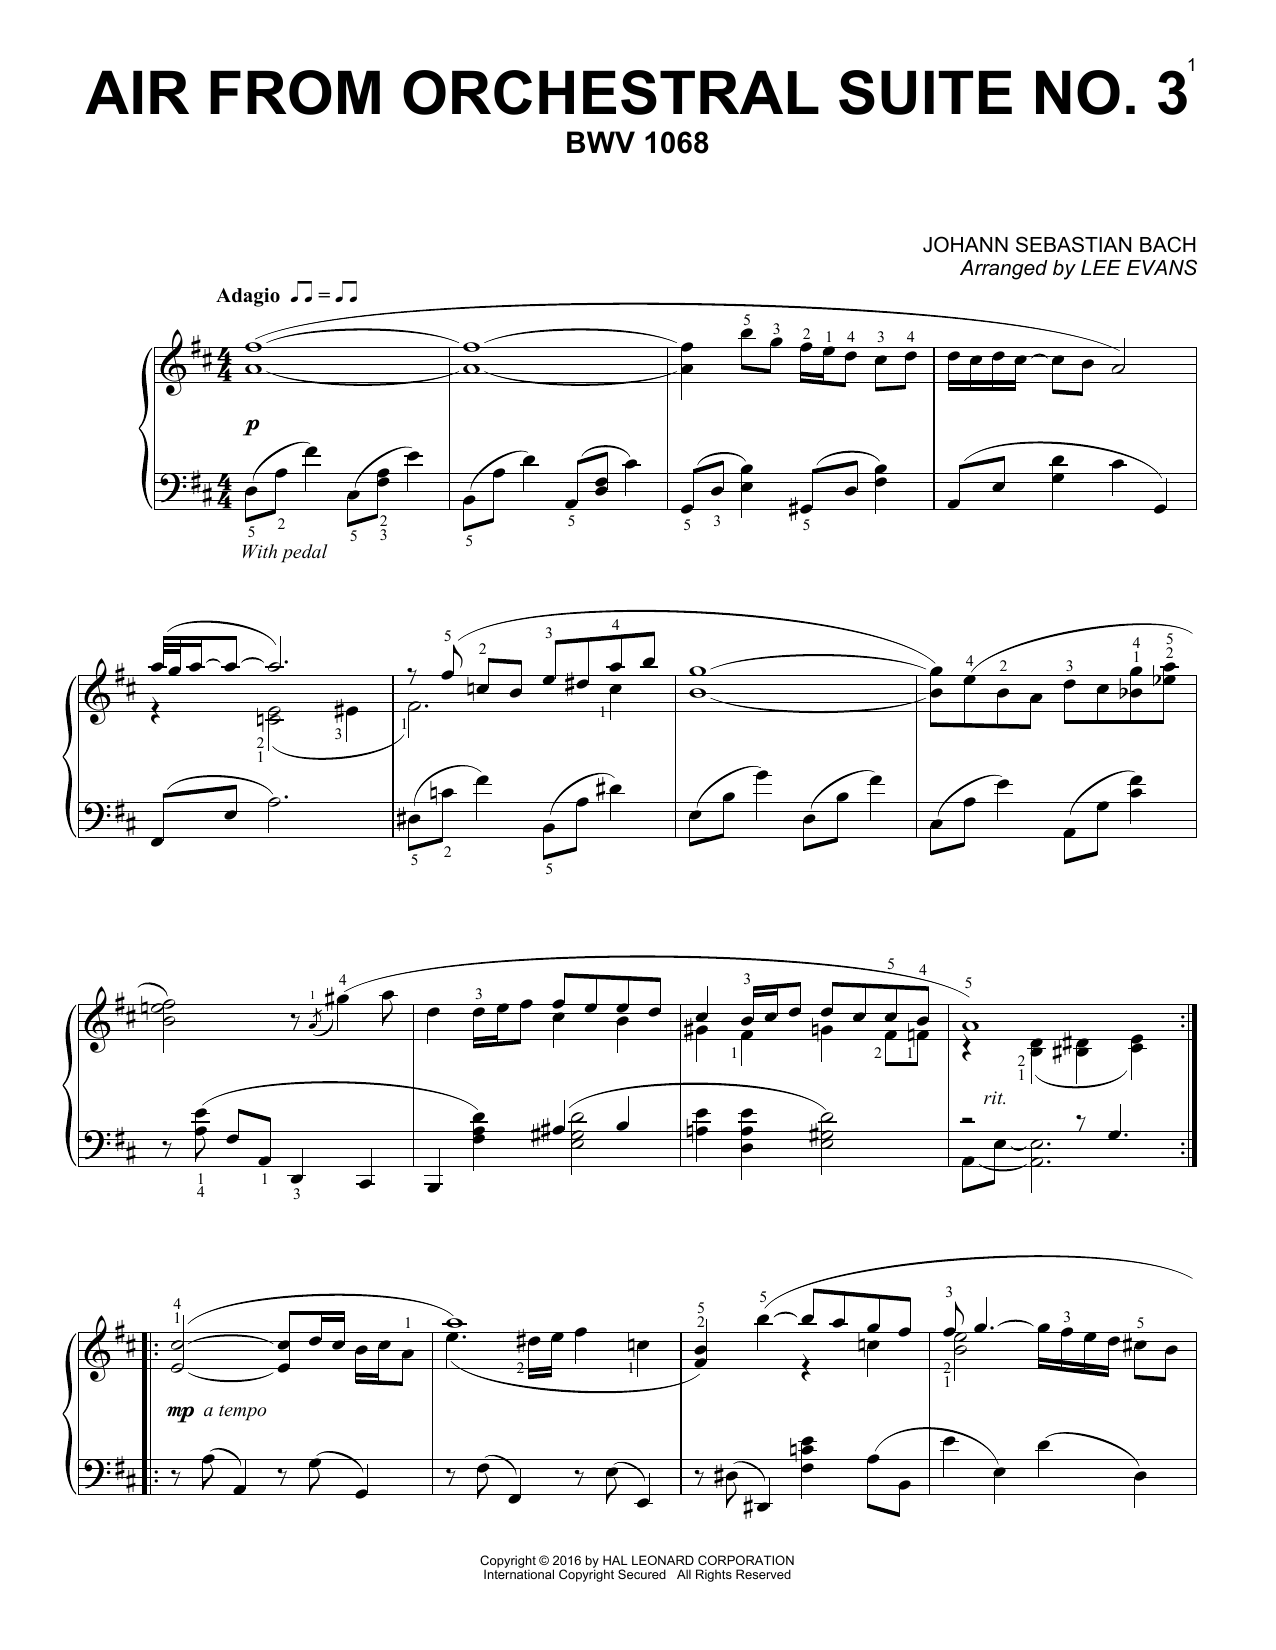 Lee Evans Air From Suite No. 3 In D sheet music notes and chords. Download Printable PDF.